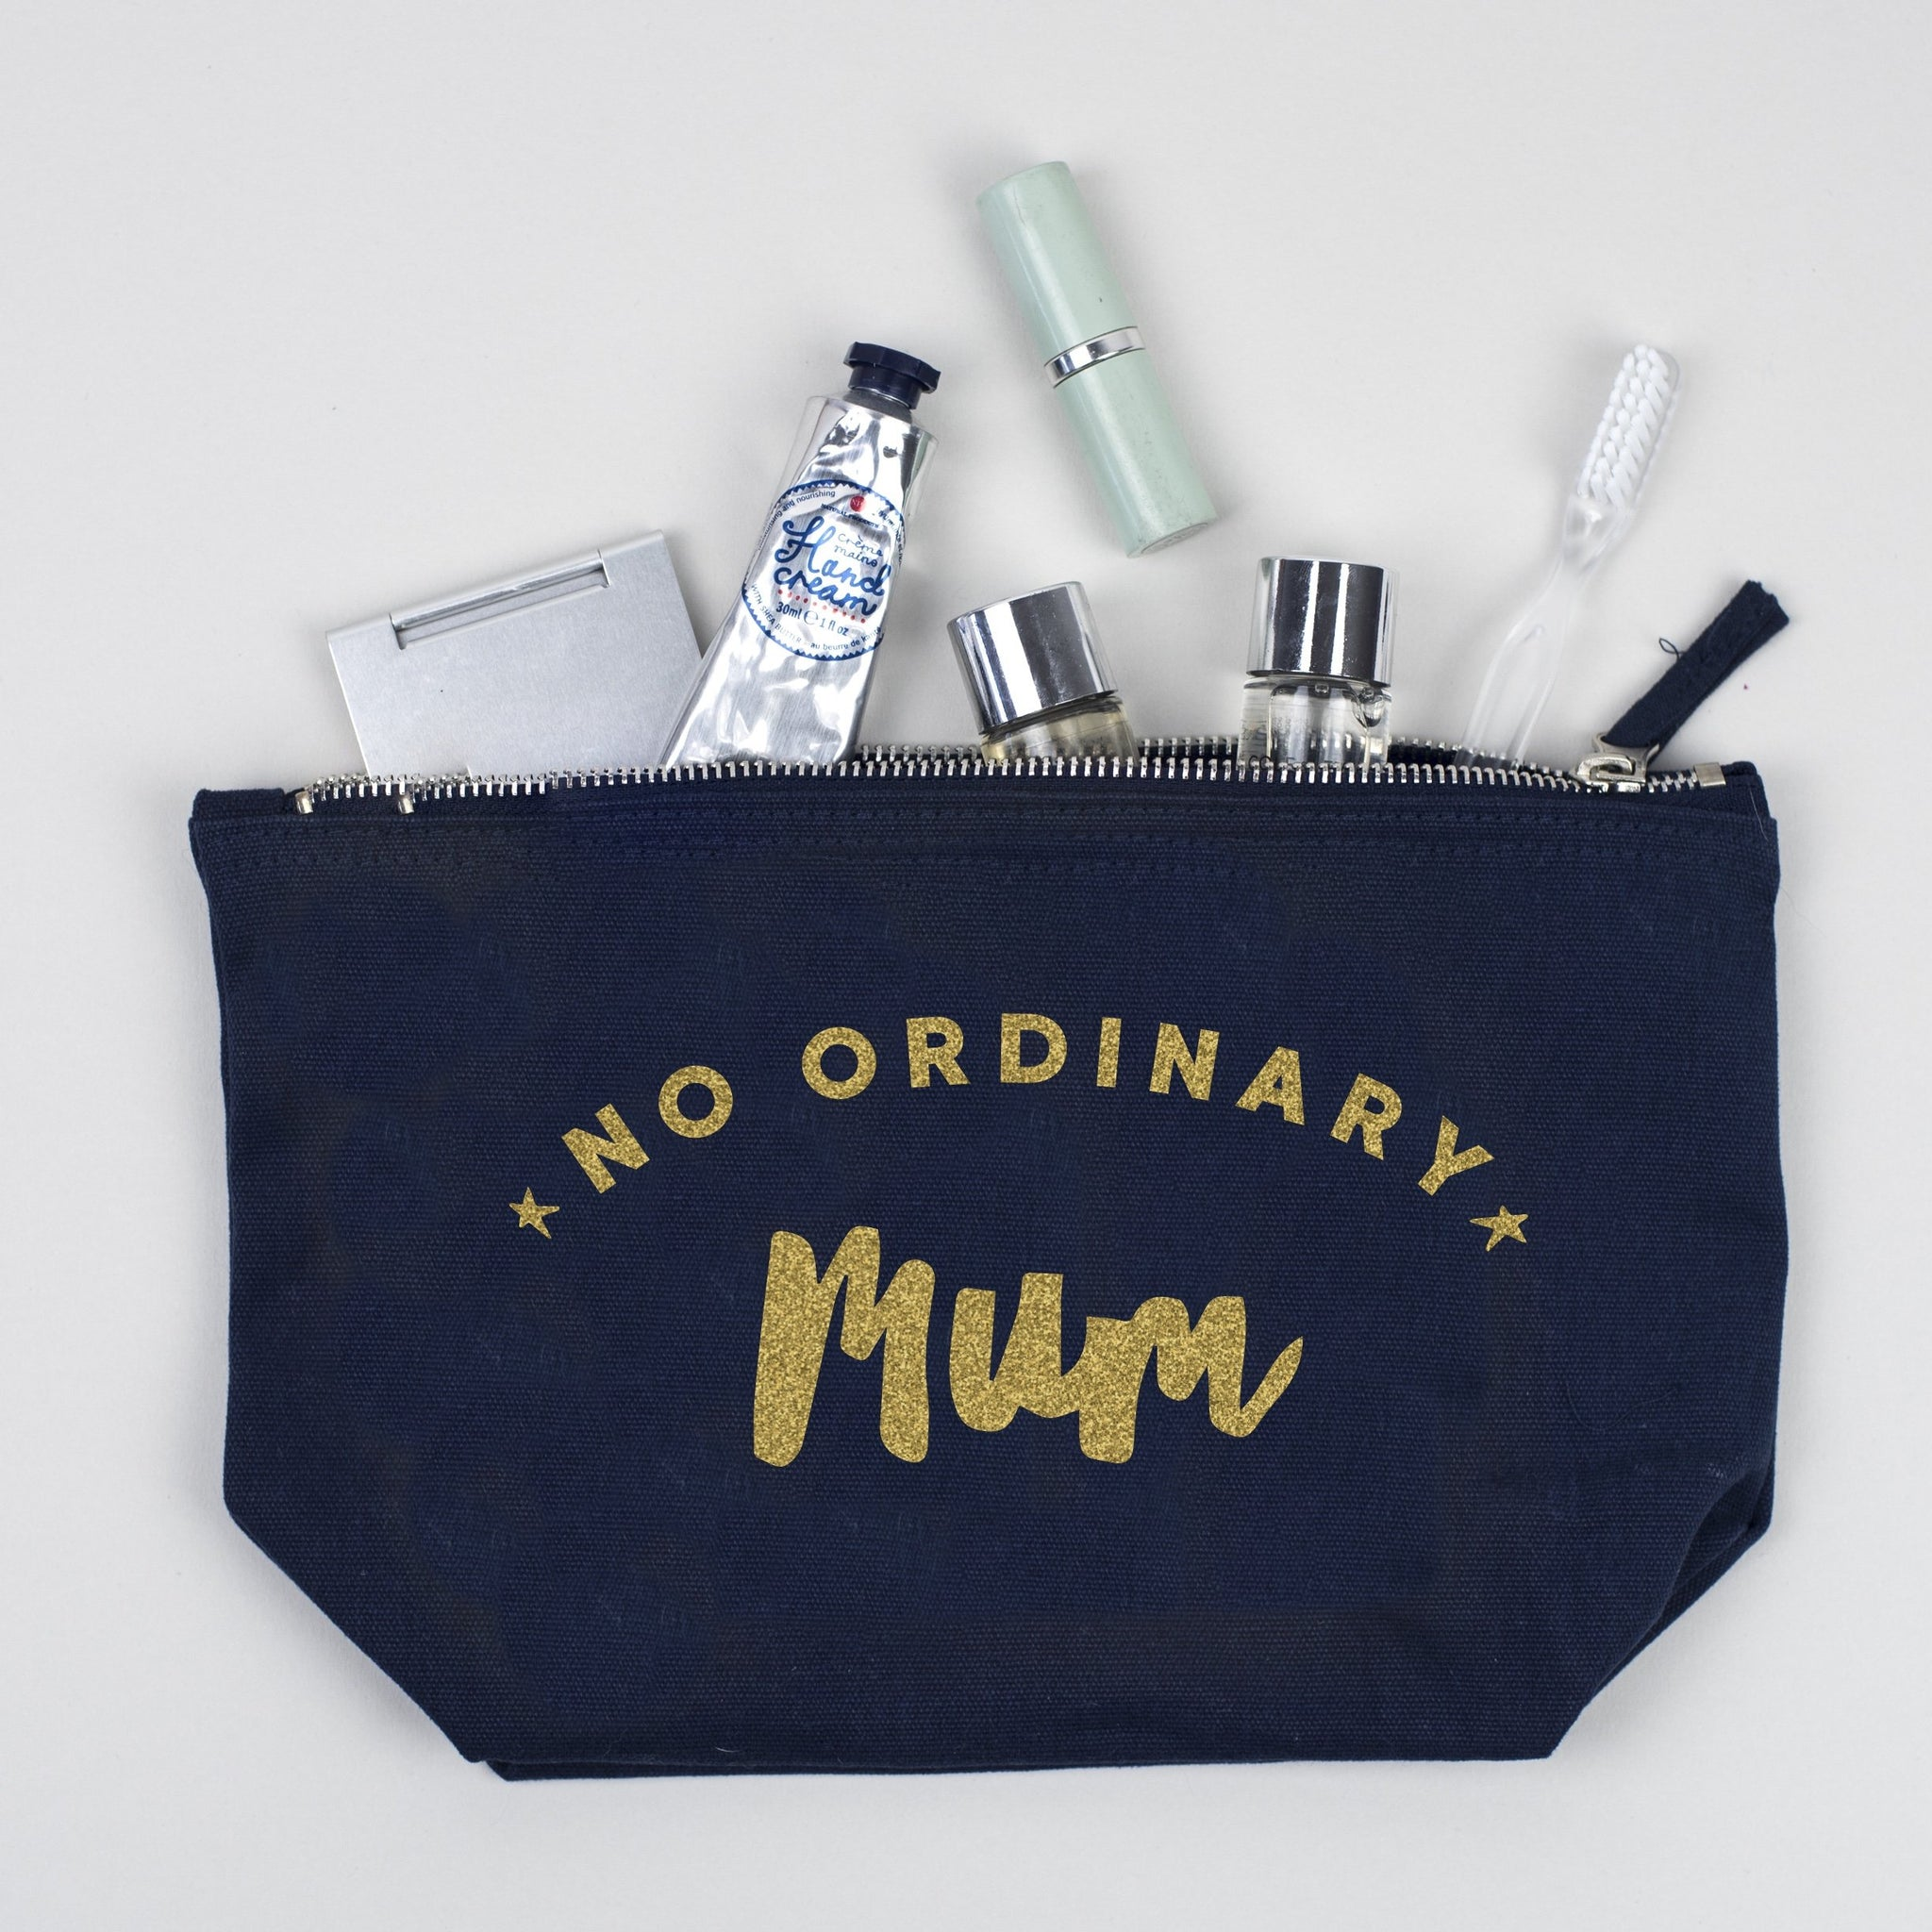 No Ordinary Mum Make Up Pouch/Accessories Case